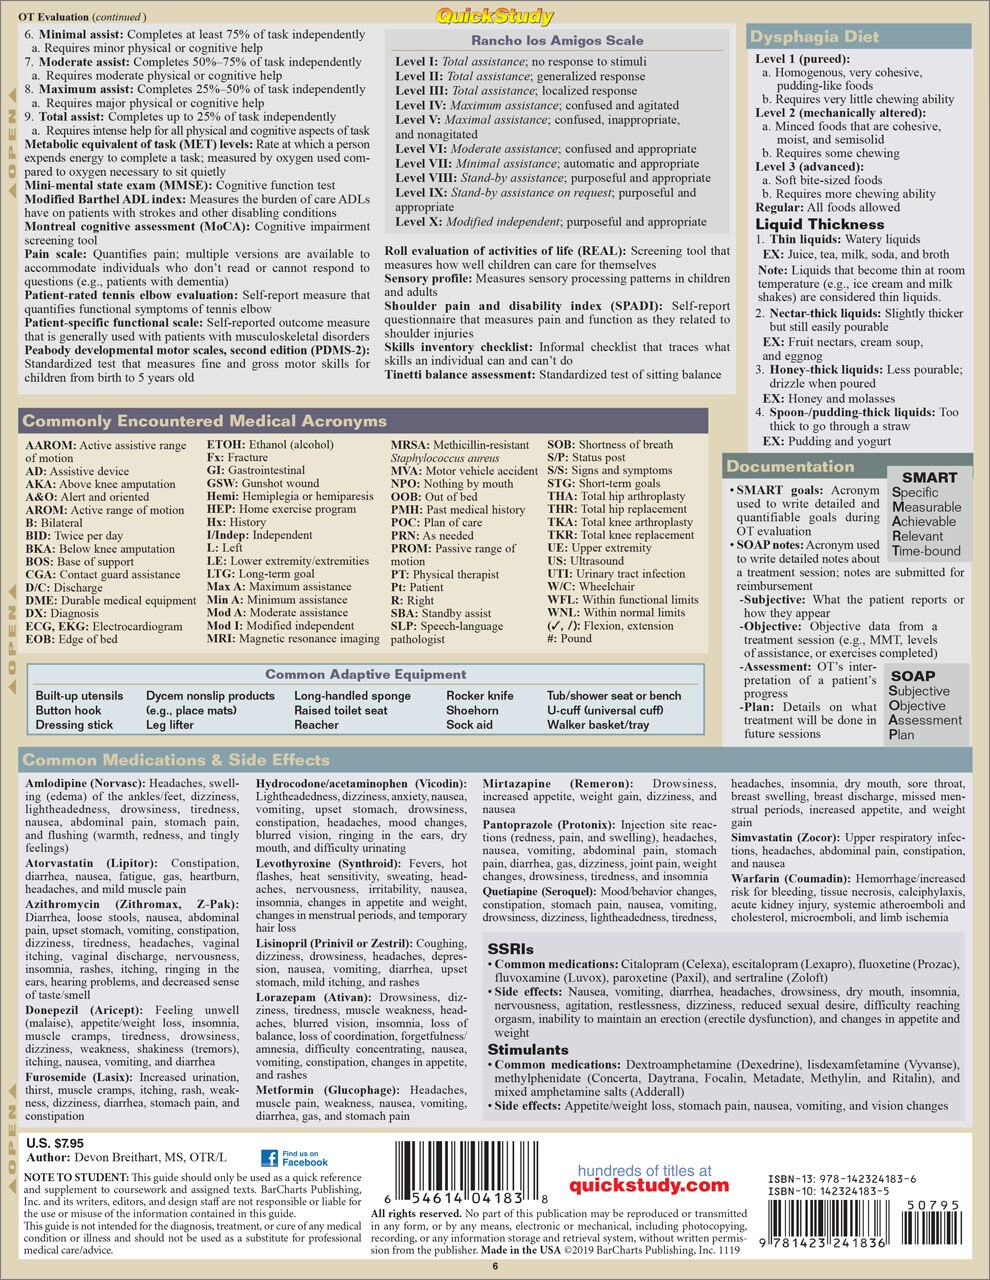 Quick Study QuickStudy Occupational Therapy Laminated Study Guide BarCharts Publishing Alternative Medicine Reference Back Image